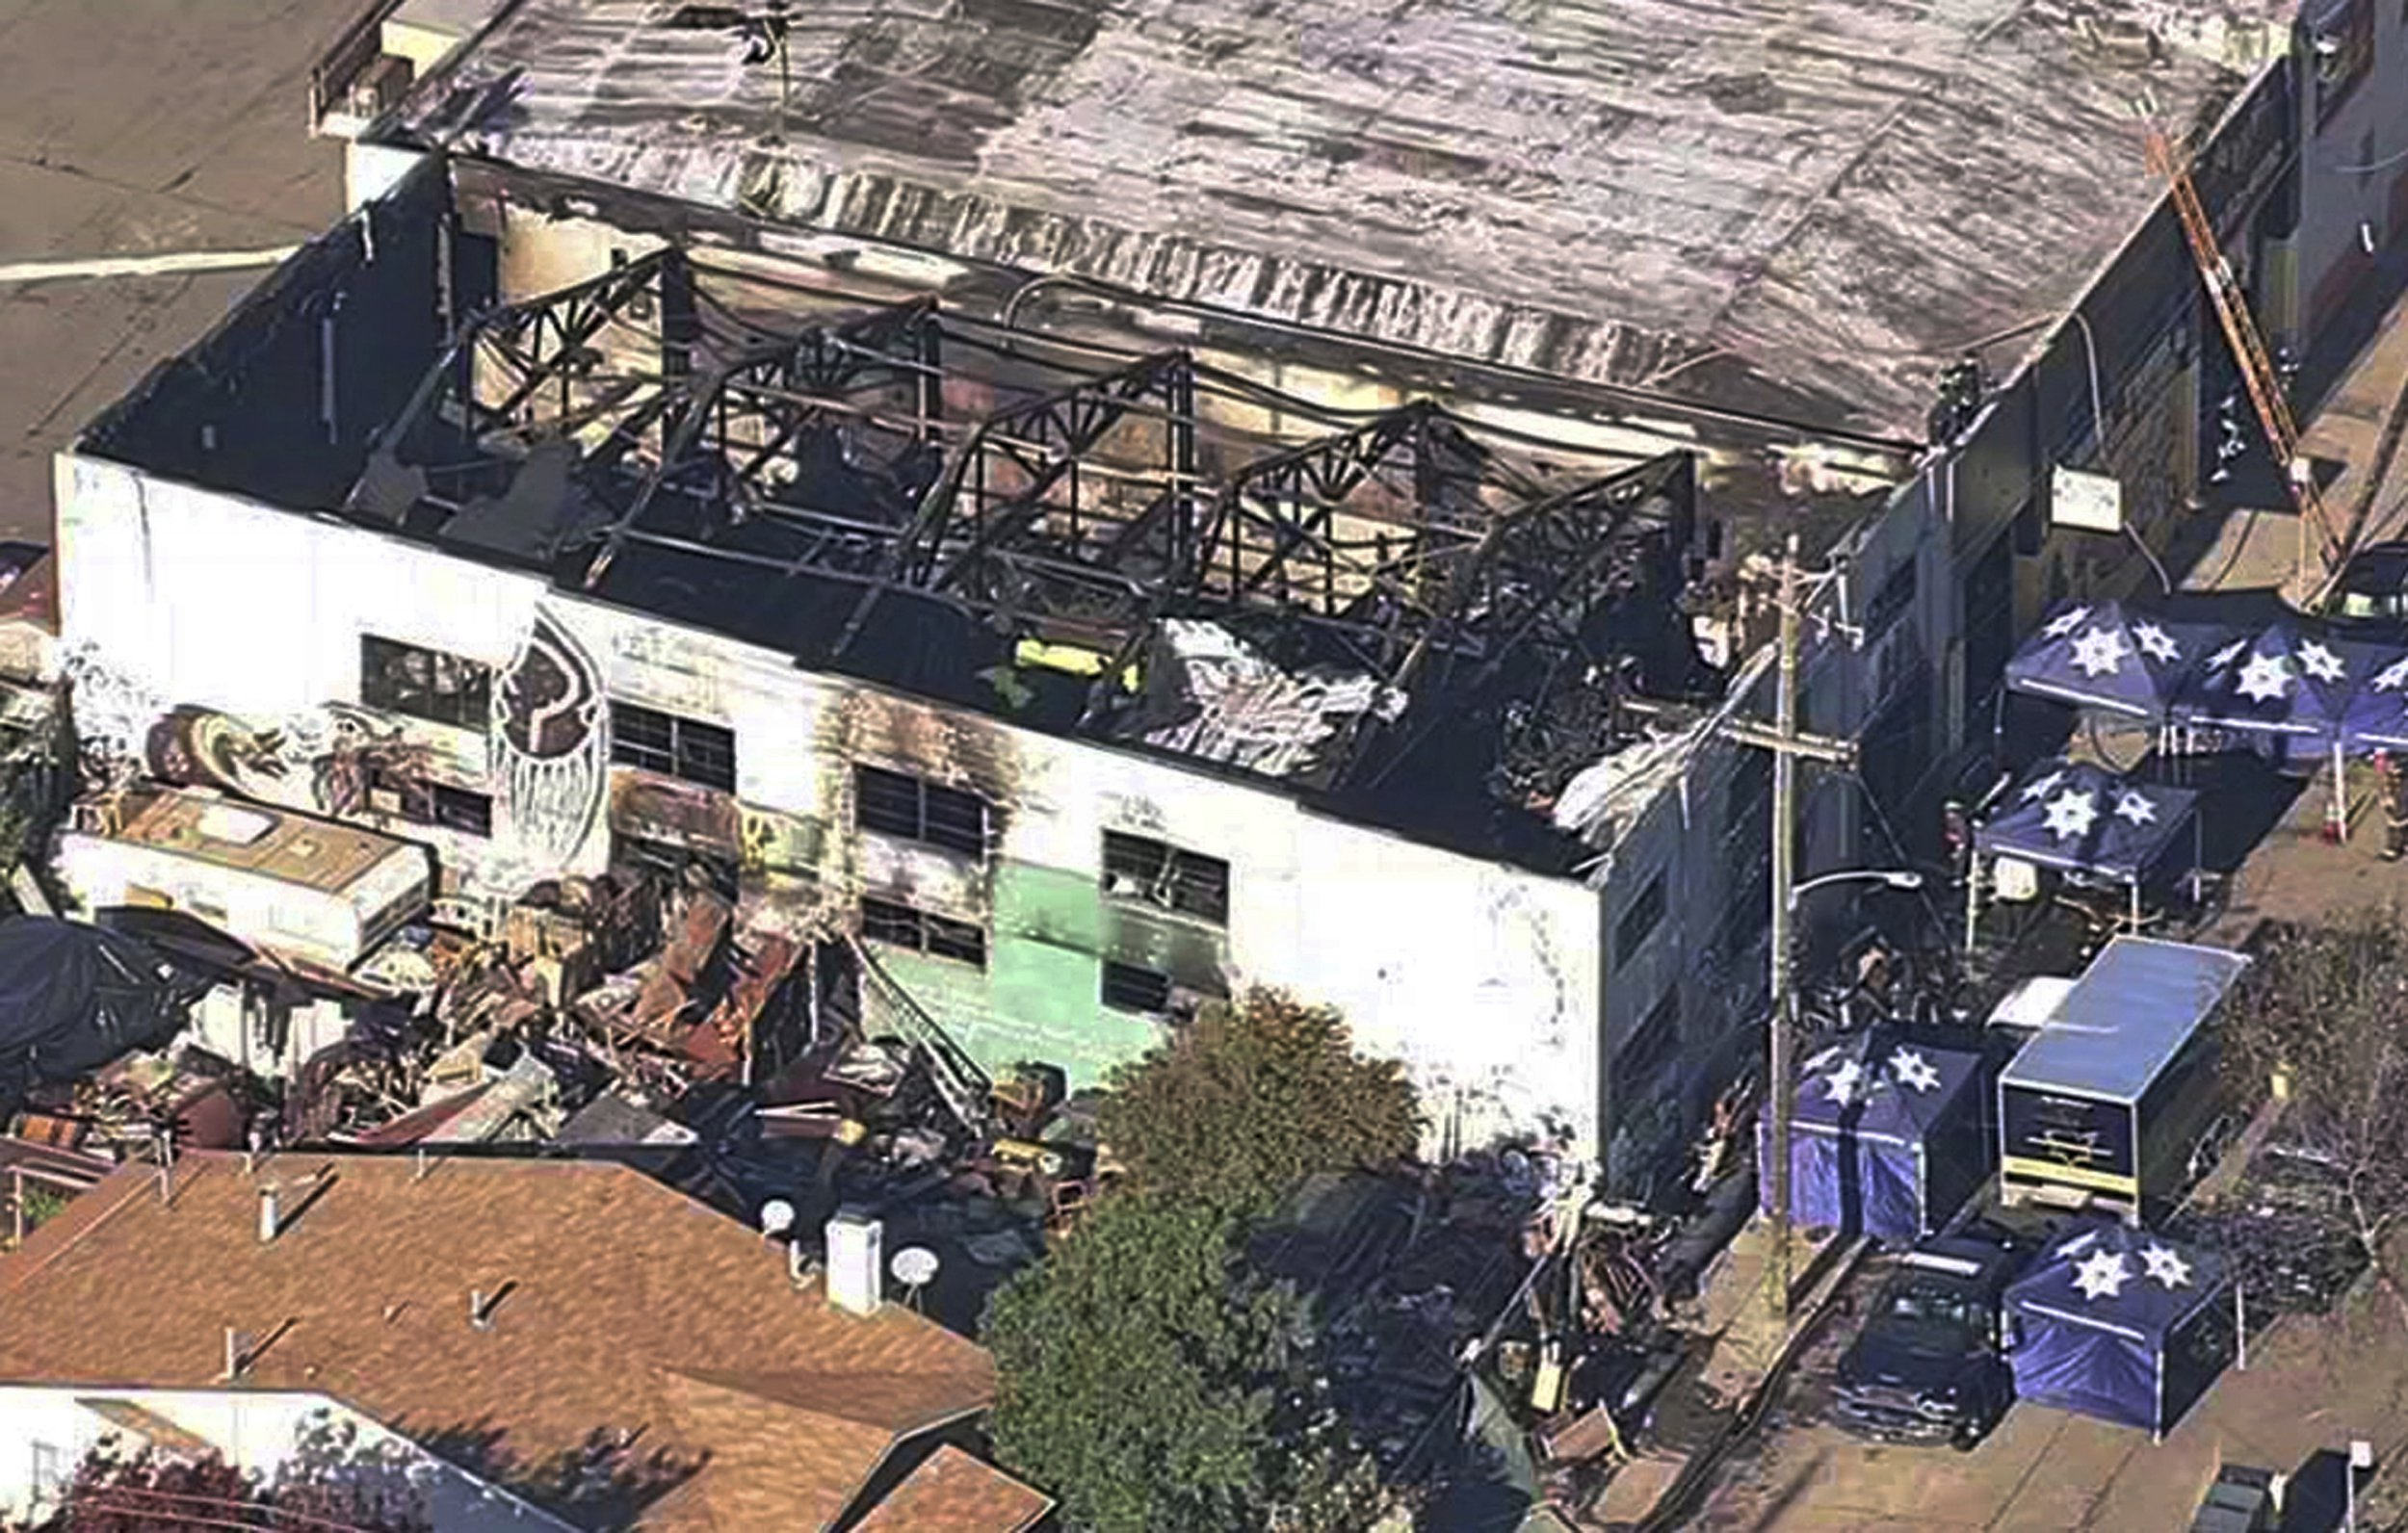 Owner of warehouse where 36 people died in fire is set for $3 million insurance payout